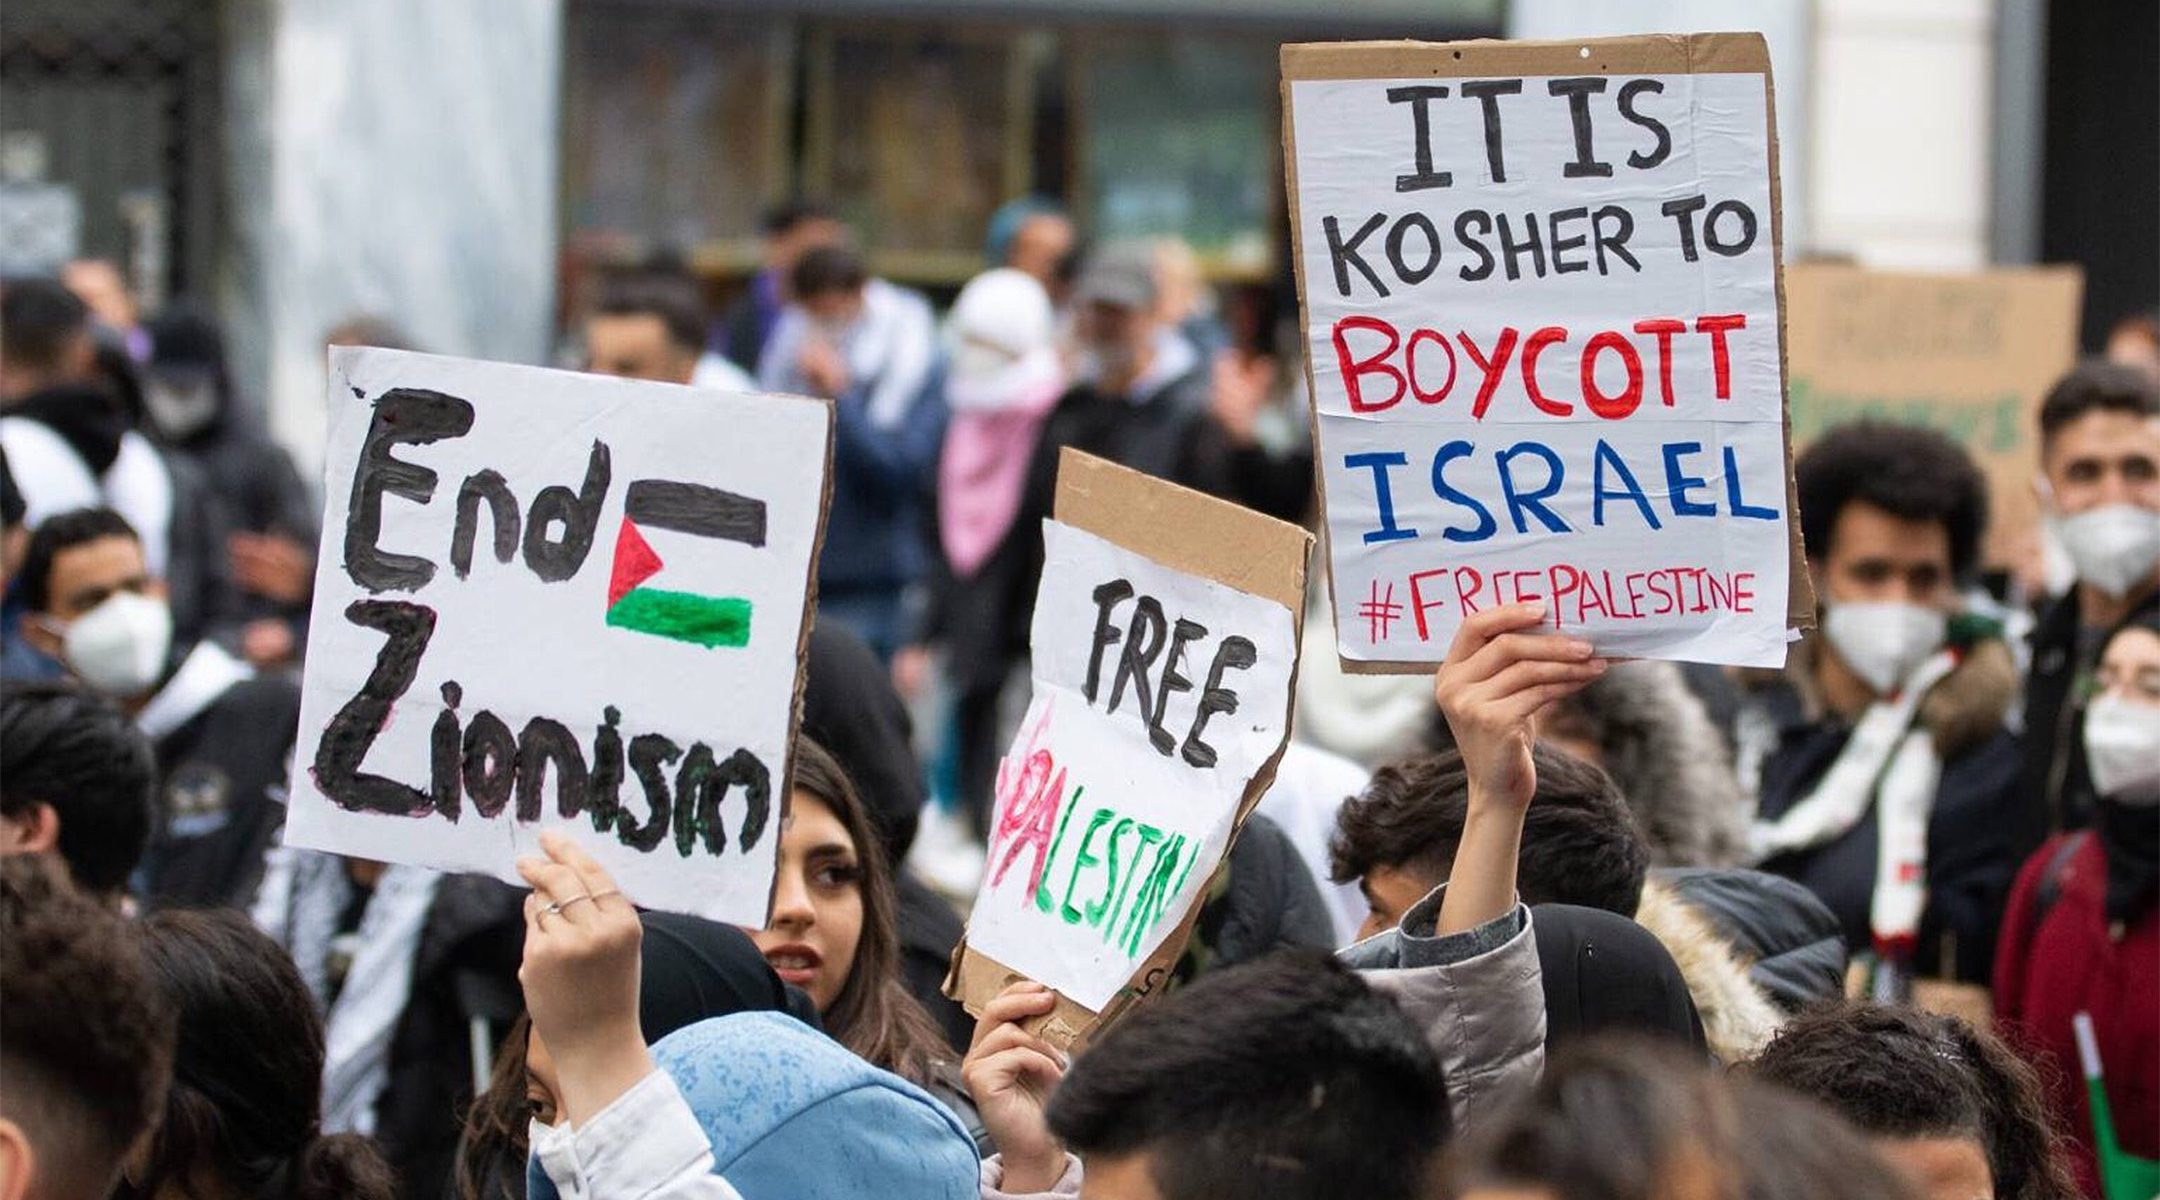 Demonstrators against Israel hold up signs at a rally in Vienna, Austria where protesters chanted in Arabic about a massacre of Jews on May 13, 2021. (Courtesy of Austrian Union of Jewish Students)